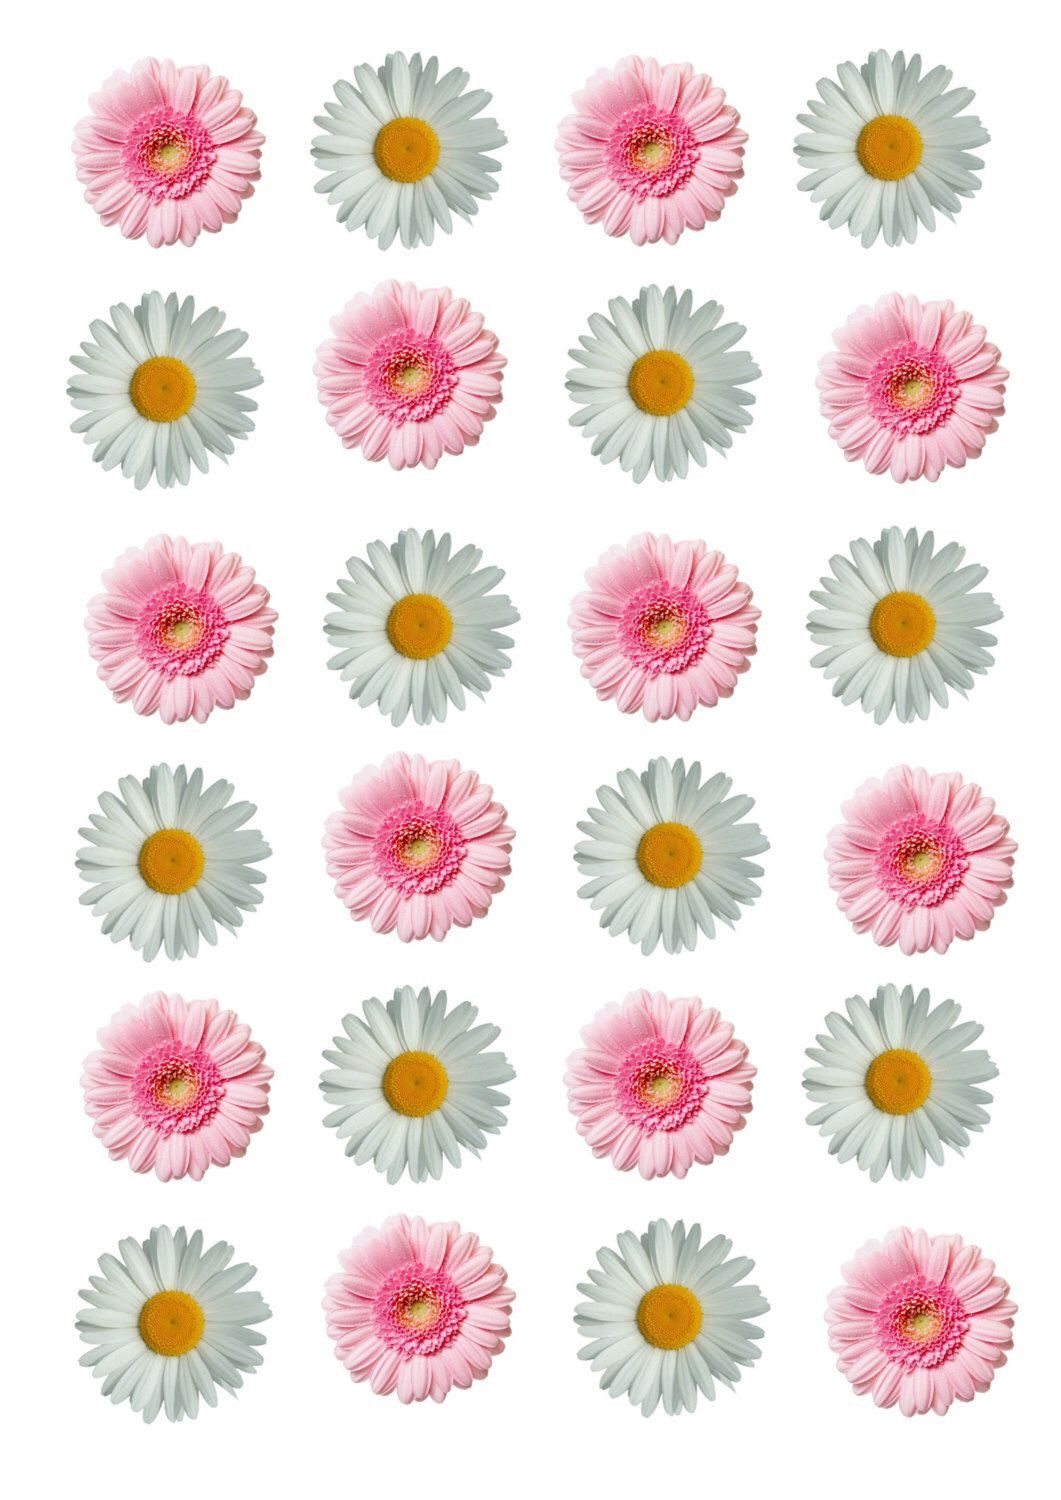 24 x precut edible pink and white daisy flowers stand up